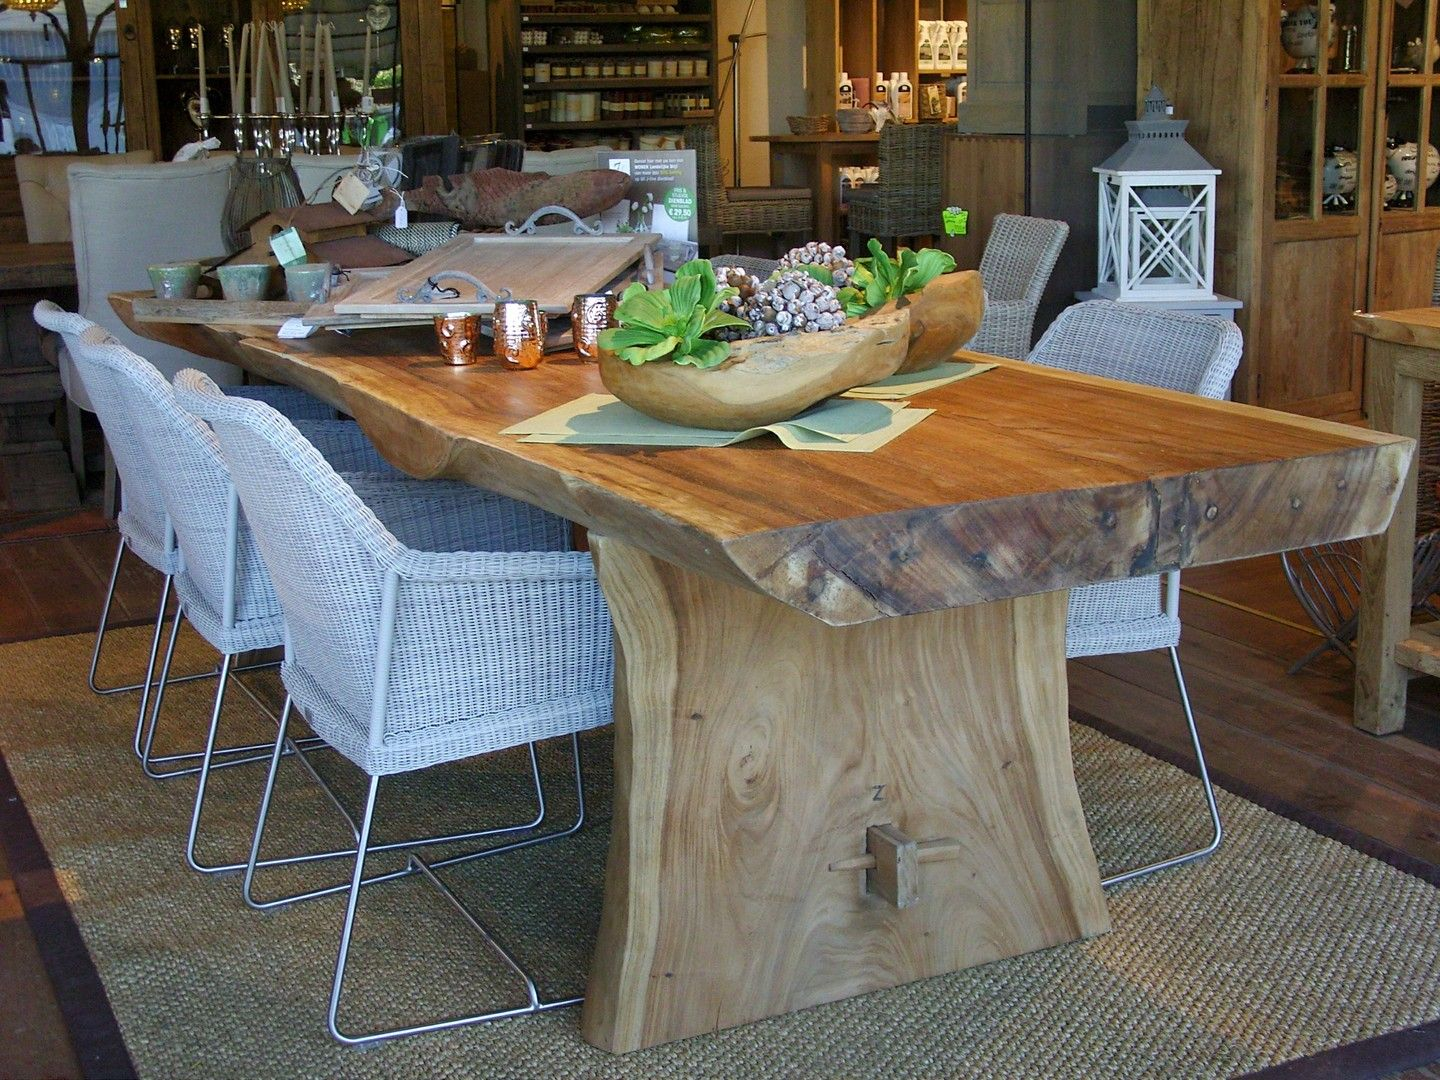 Mobilier Tronc D Arbre table tronc d'arbre en bois exotique | dining table, dining